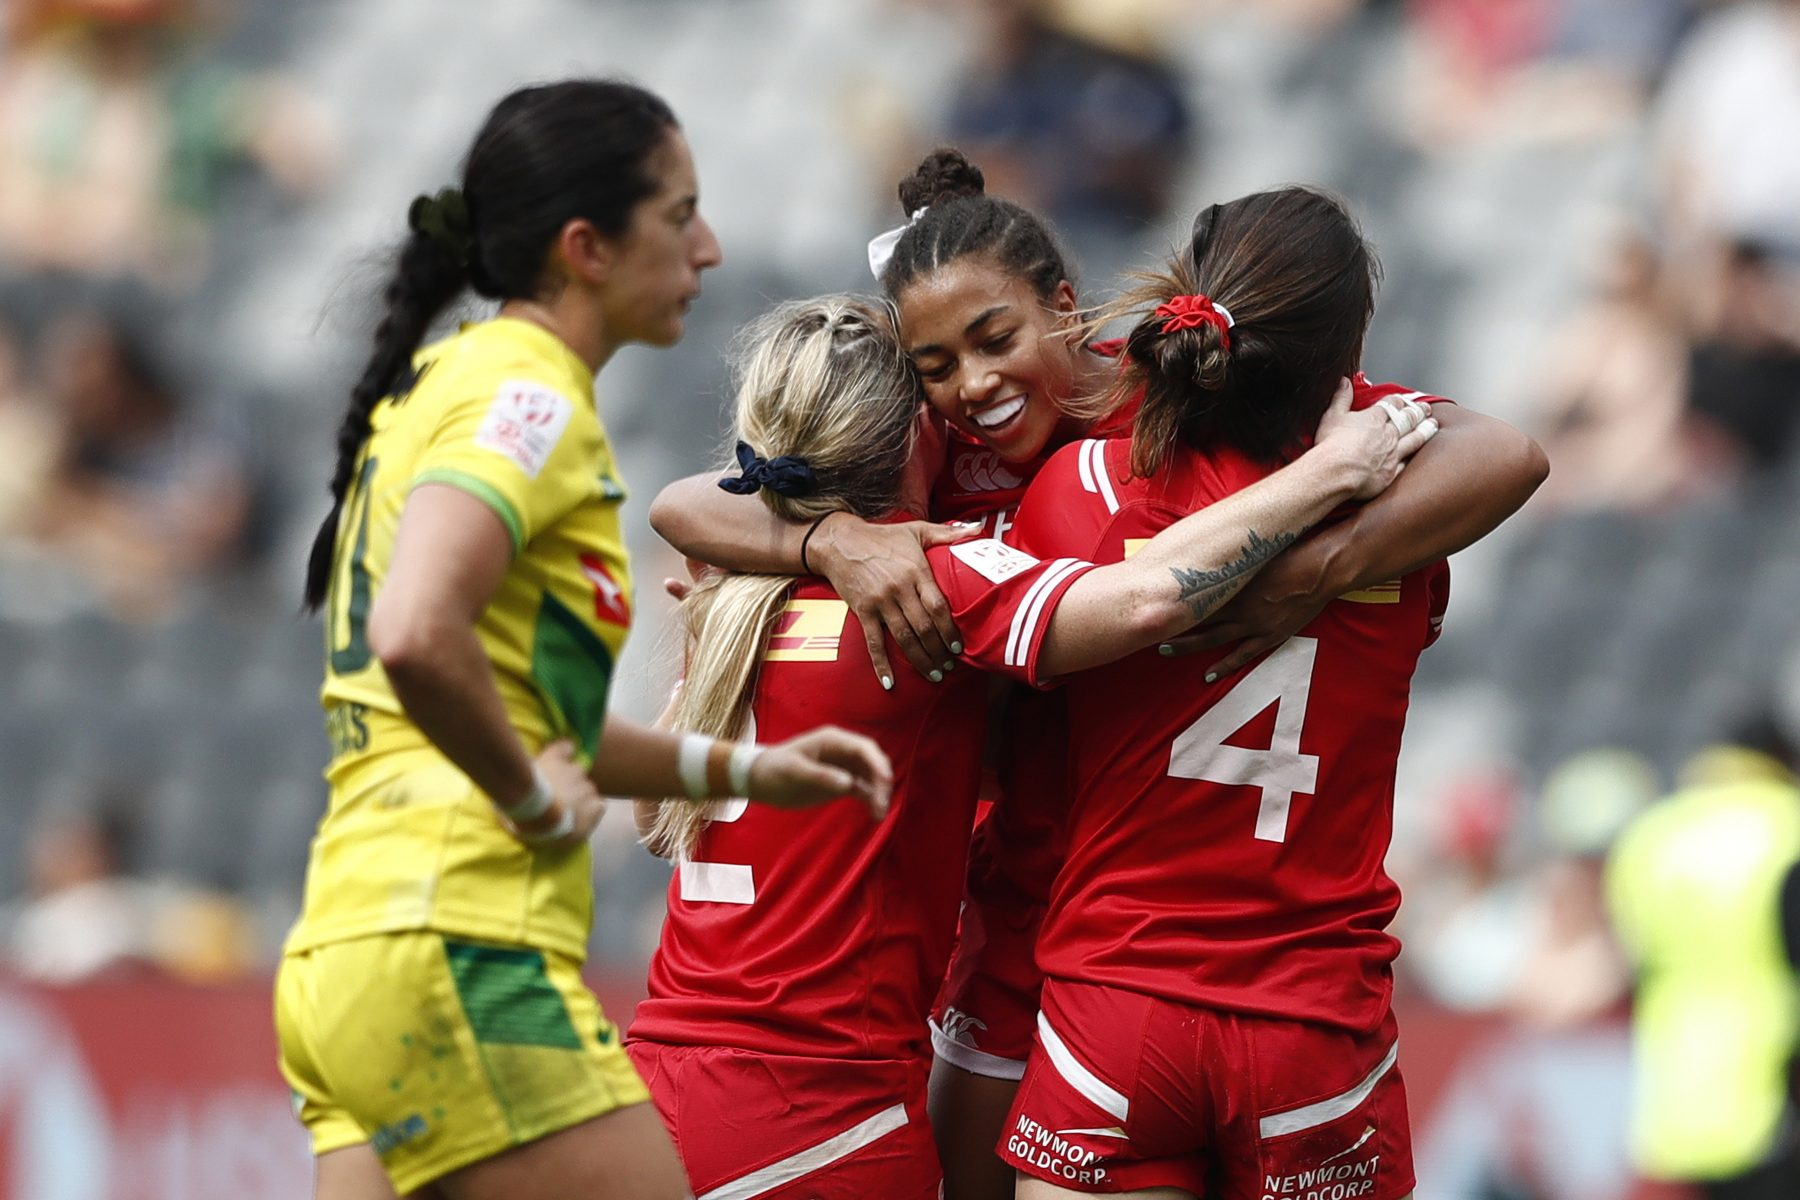 Canada players celebrate the Cup Semi Final win over Australia on day two of the HSBC Sydney Sevens 2020 women's competition at Bankwest Stadium on 2 February, 2020 in Sydney, Australia. Photo credit: Mike Lee - KLC fotos for World Rugby